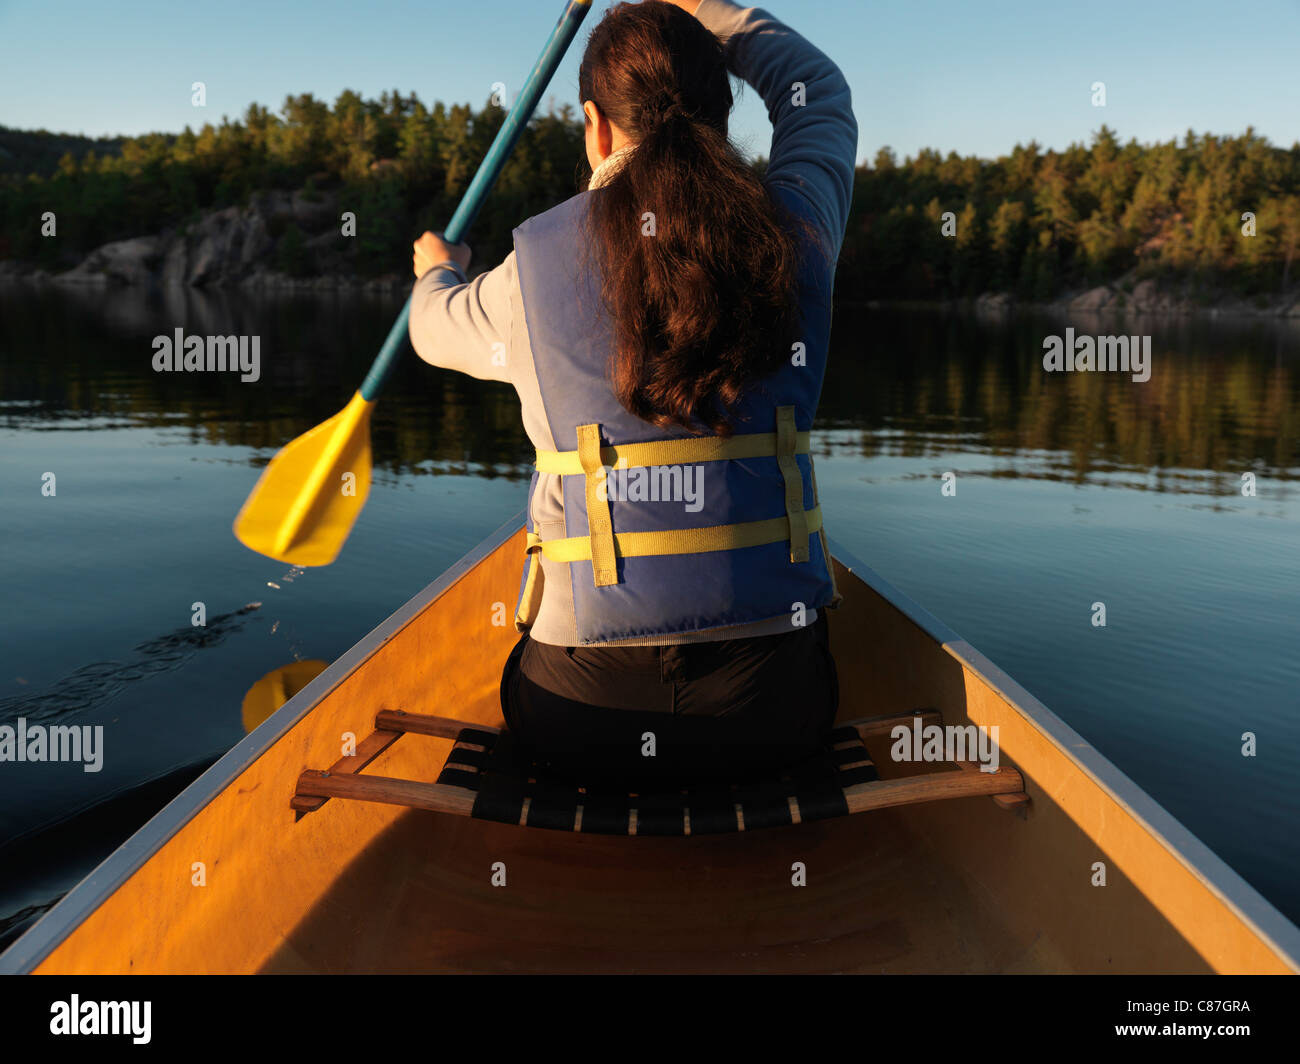 Woman paddling a canoe. Sunset fall nature scenery. Killarney Provincial Park, Ontario, Canada. - Stock Image